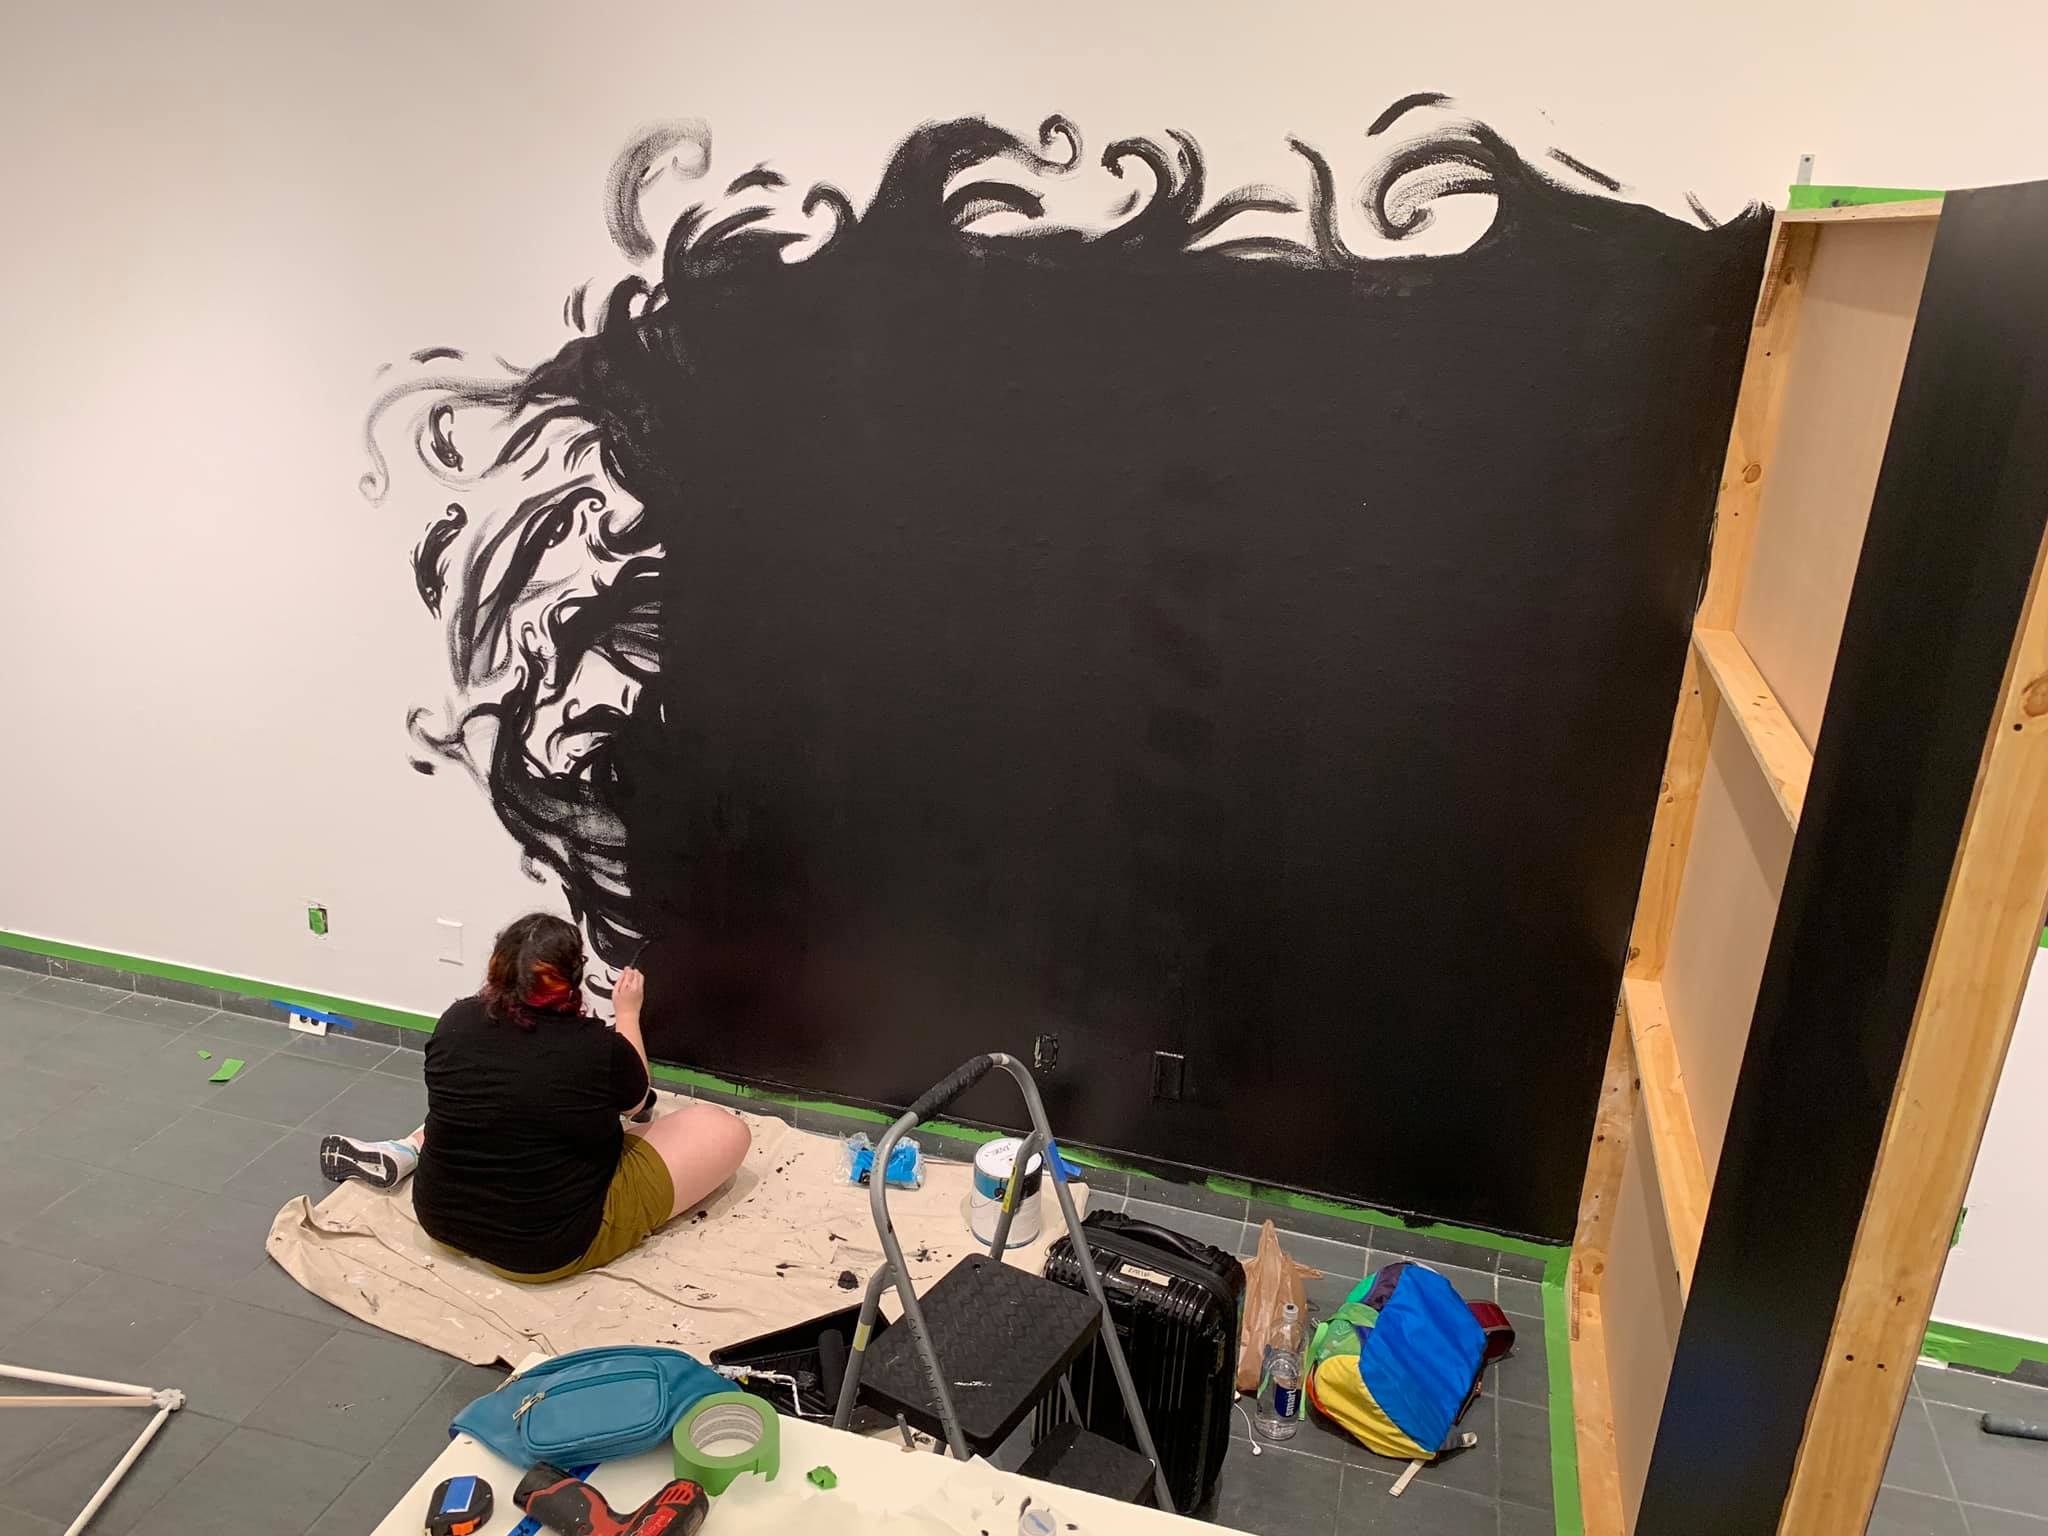 Image of a figure with dark hair with red streaks, painting a wall black with tendrils of black smoke extending from right to left into the unpainted, white side.